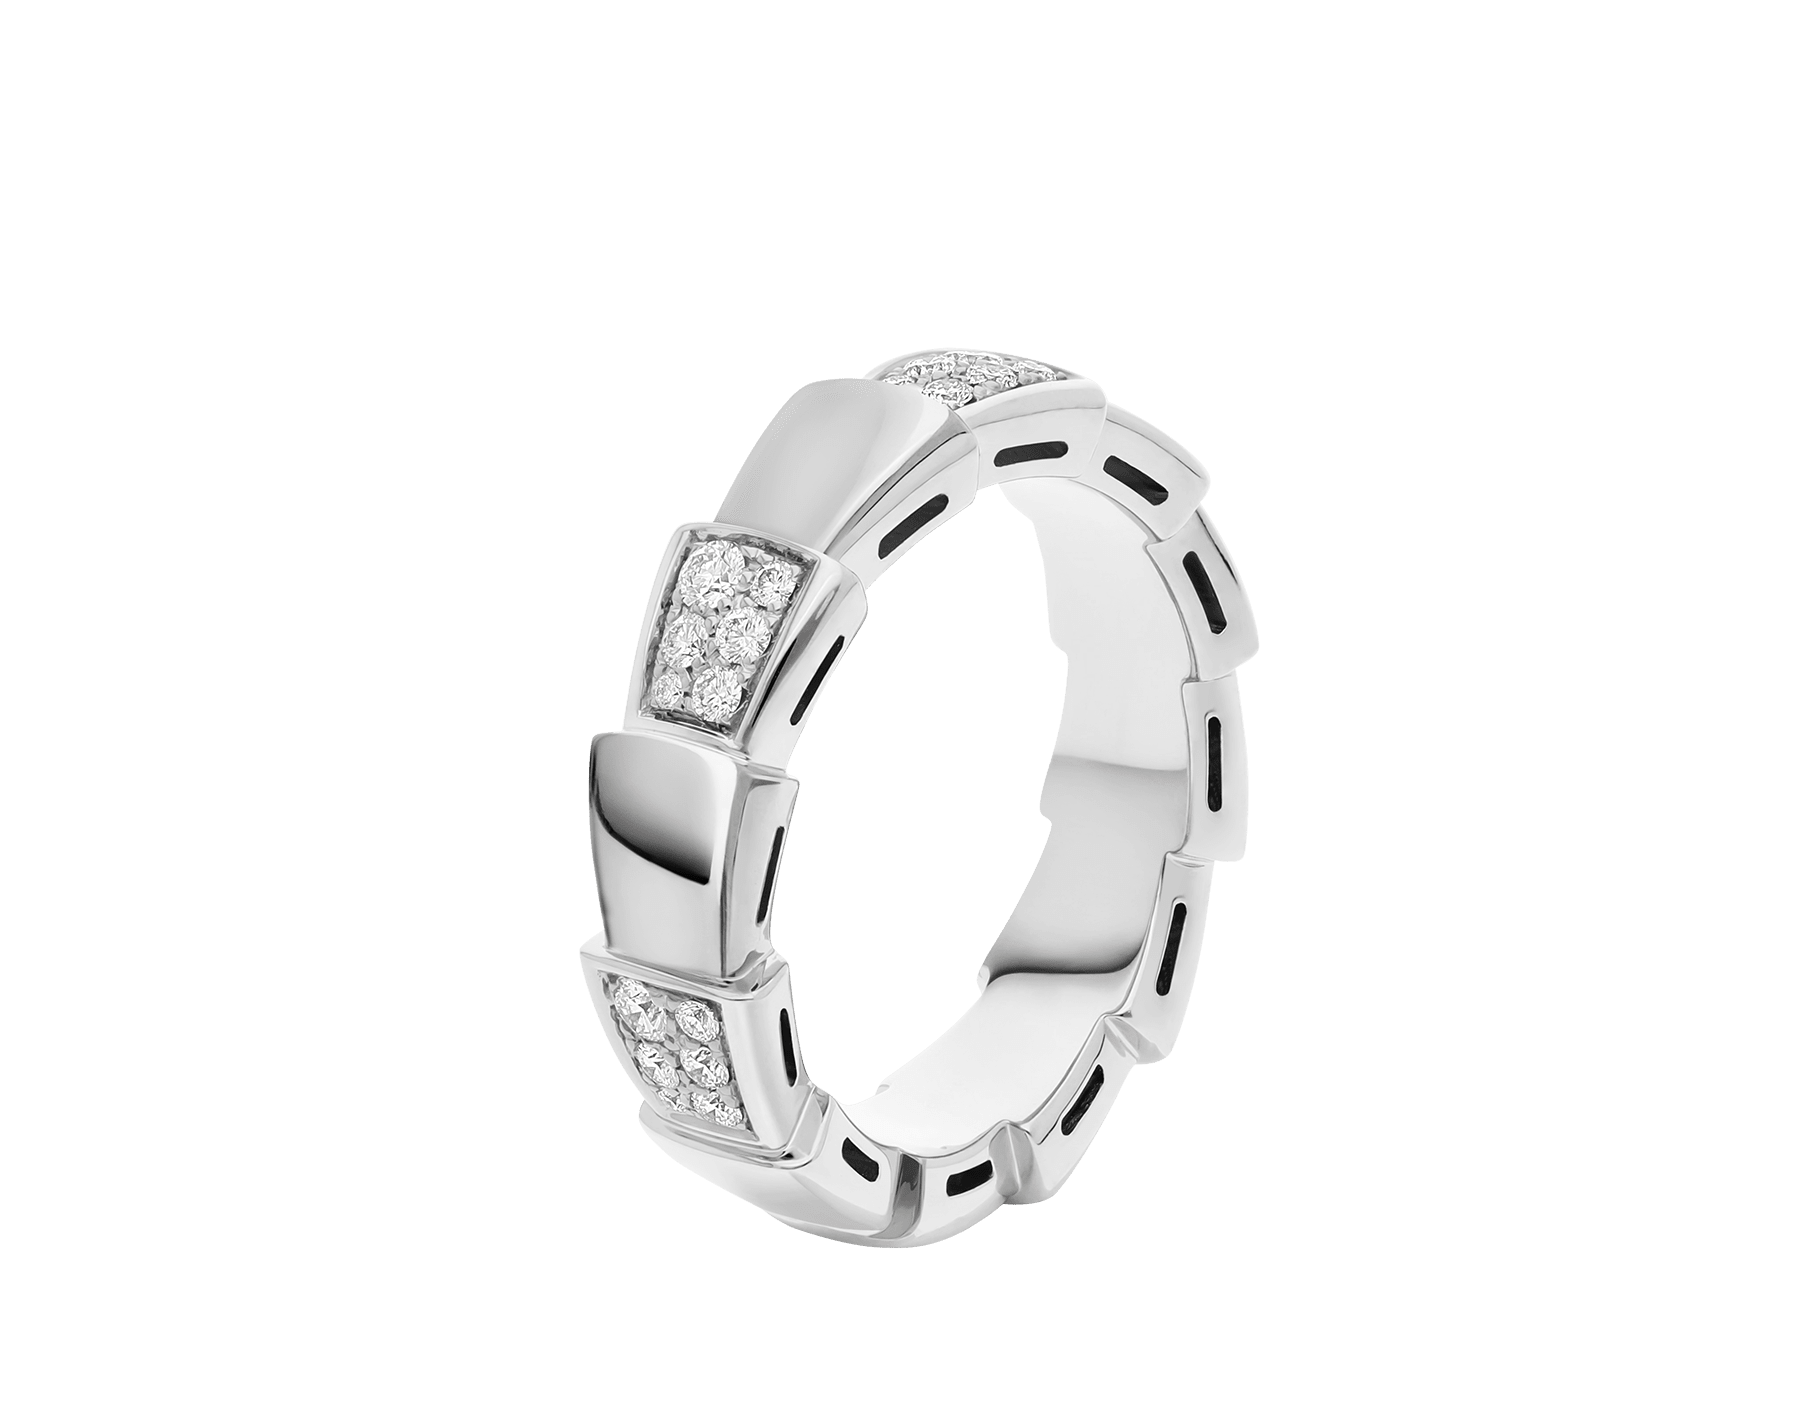 Serpenti Viper band ring in 18 kt white gold set with demi pavé diamonds (0.43 ct). AN857931 image 1